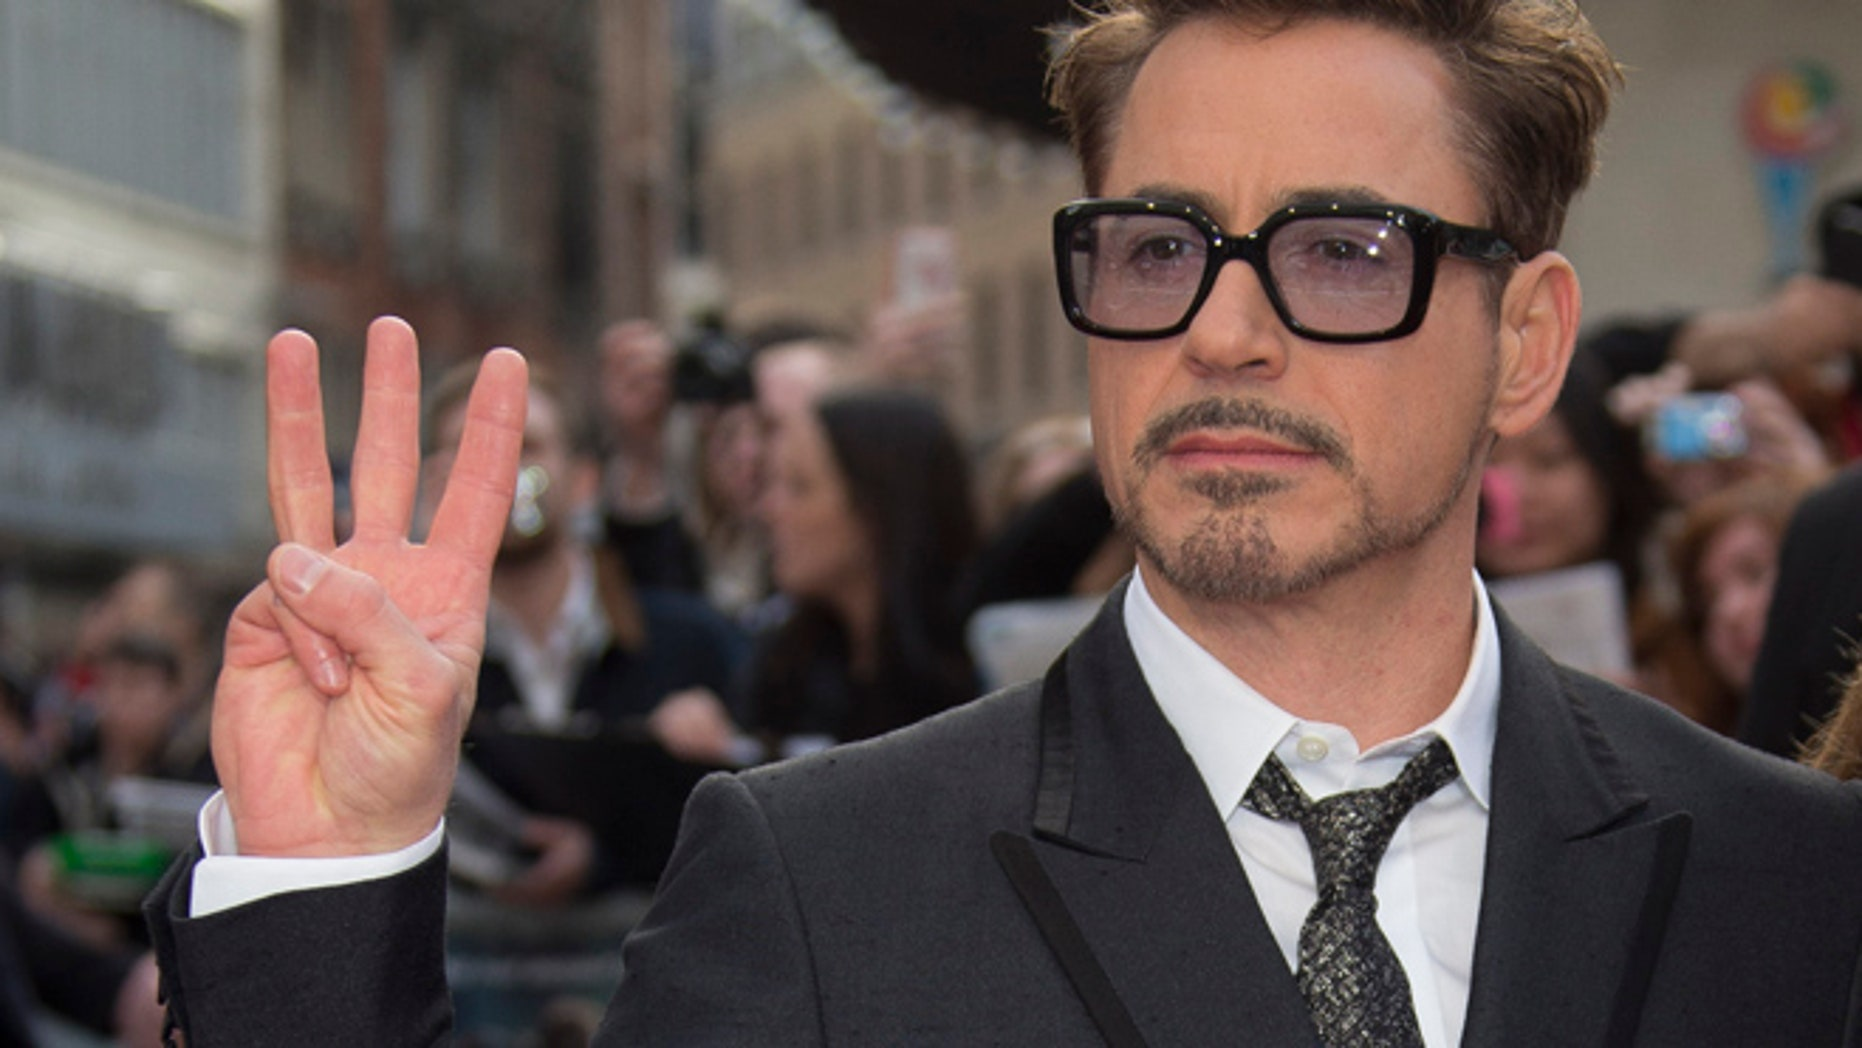 US actor Robert Downey Jr arrives for the UK premiere of Iron Man 3, at a central London cinema, Thursday, April 18, 2013. (Photo by Joel Ryan/Invision/AP)